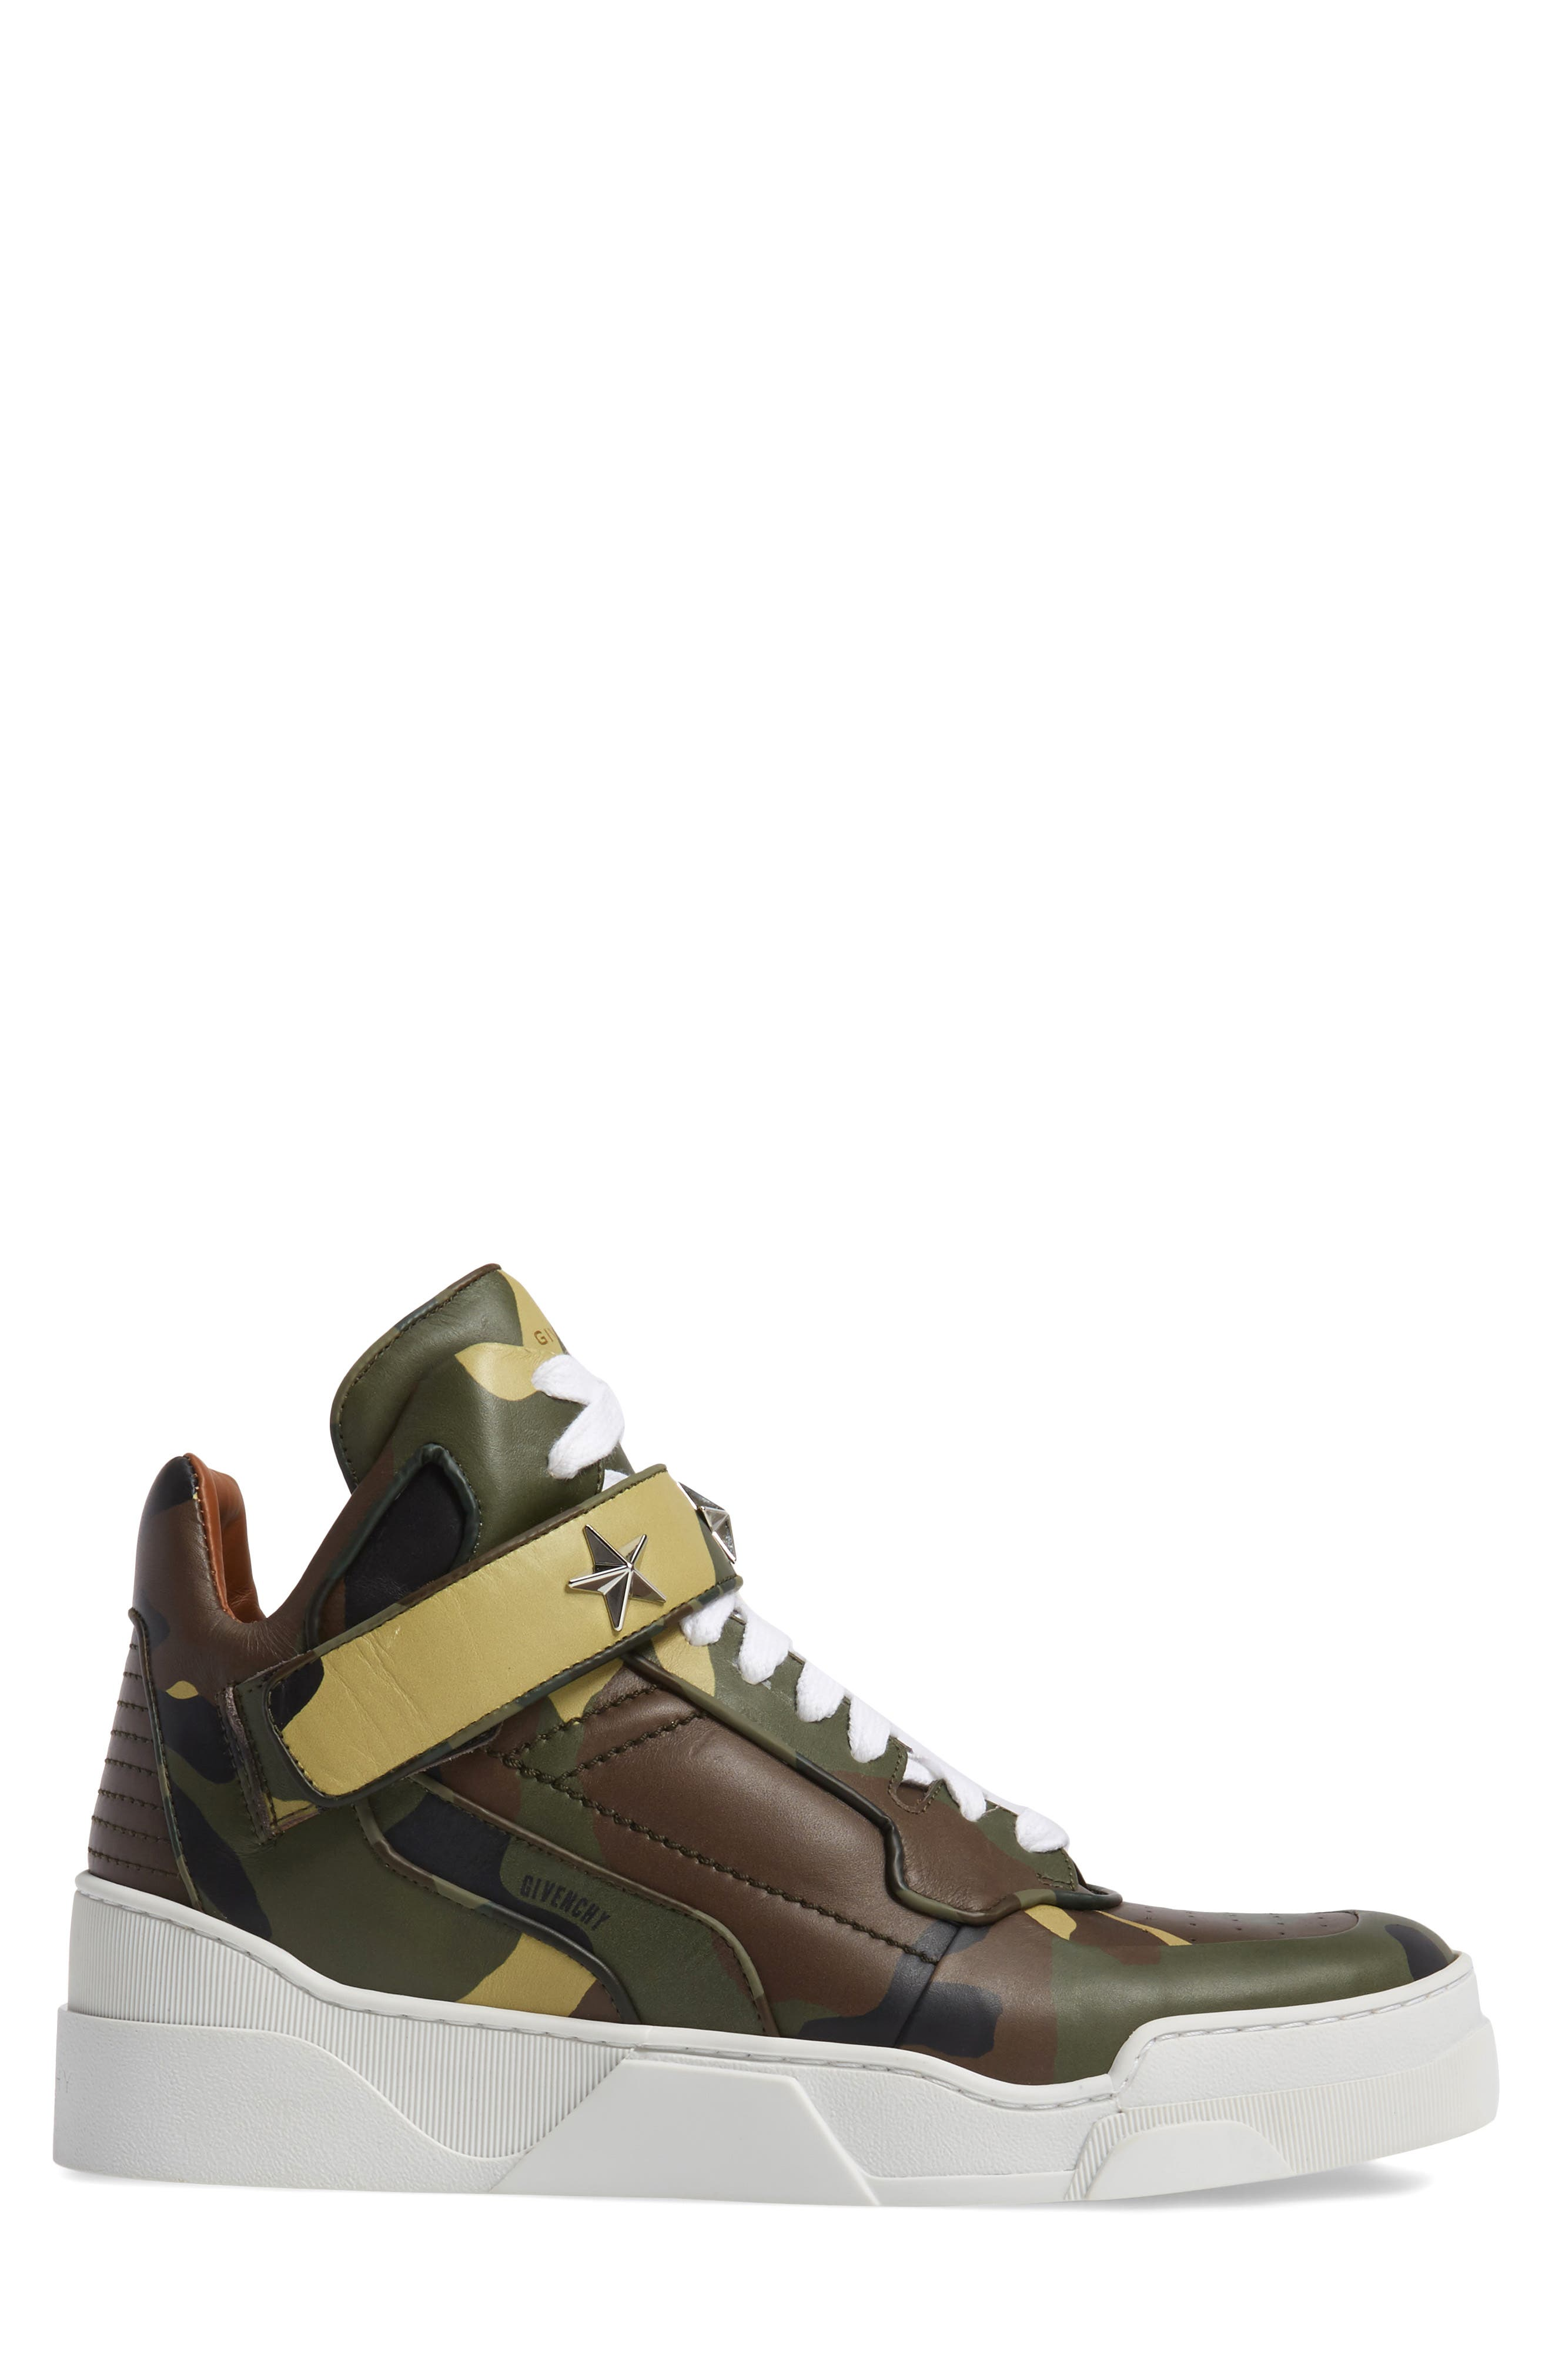 Alternate Image 3  - Givenchy 'Tyson' High Top Sneaker (Men) (Nordstrom Exclusive)